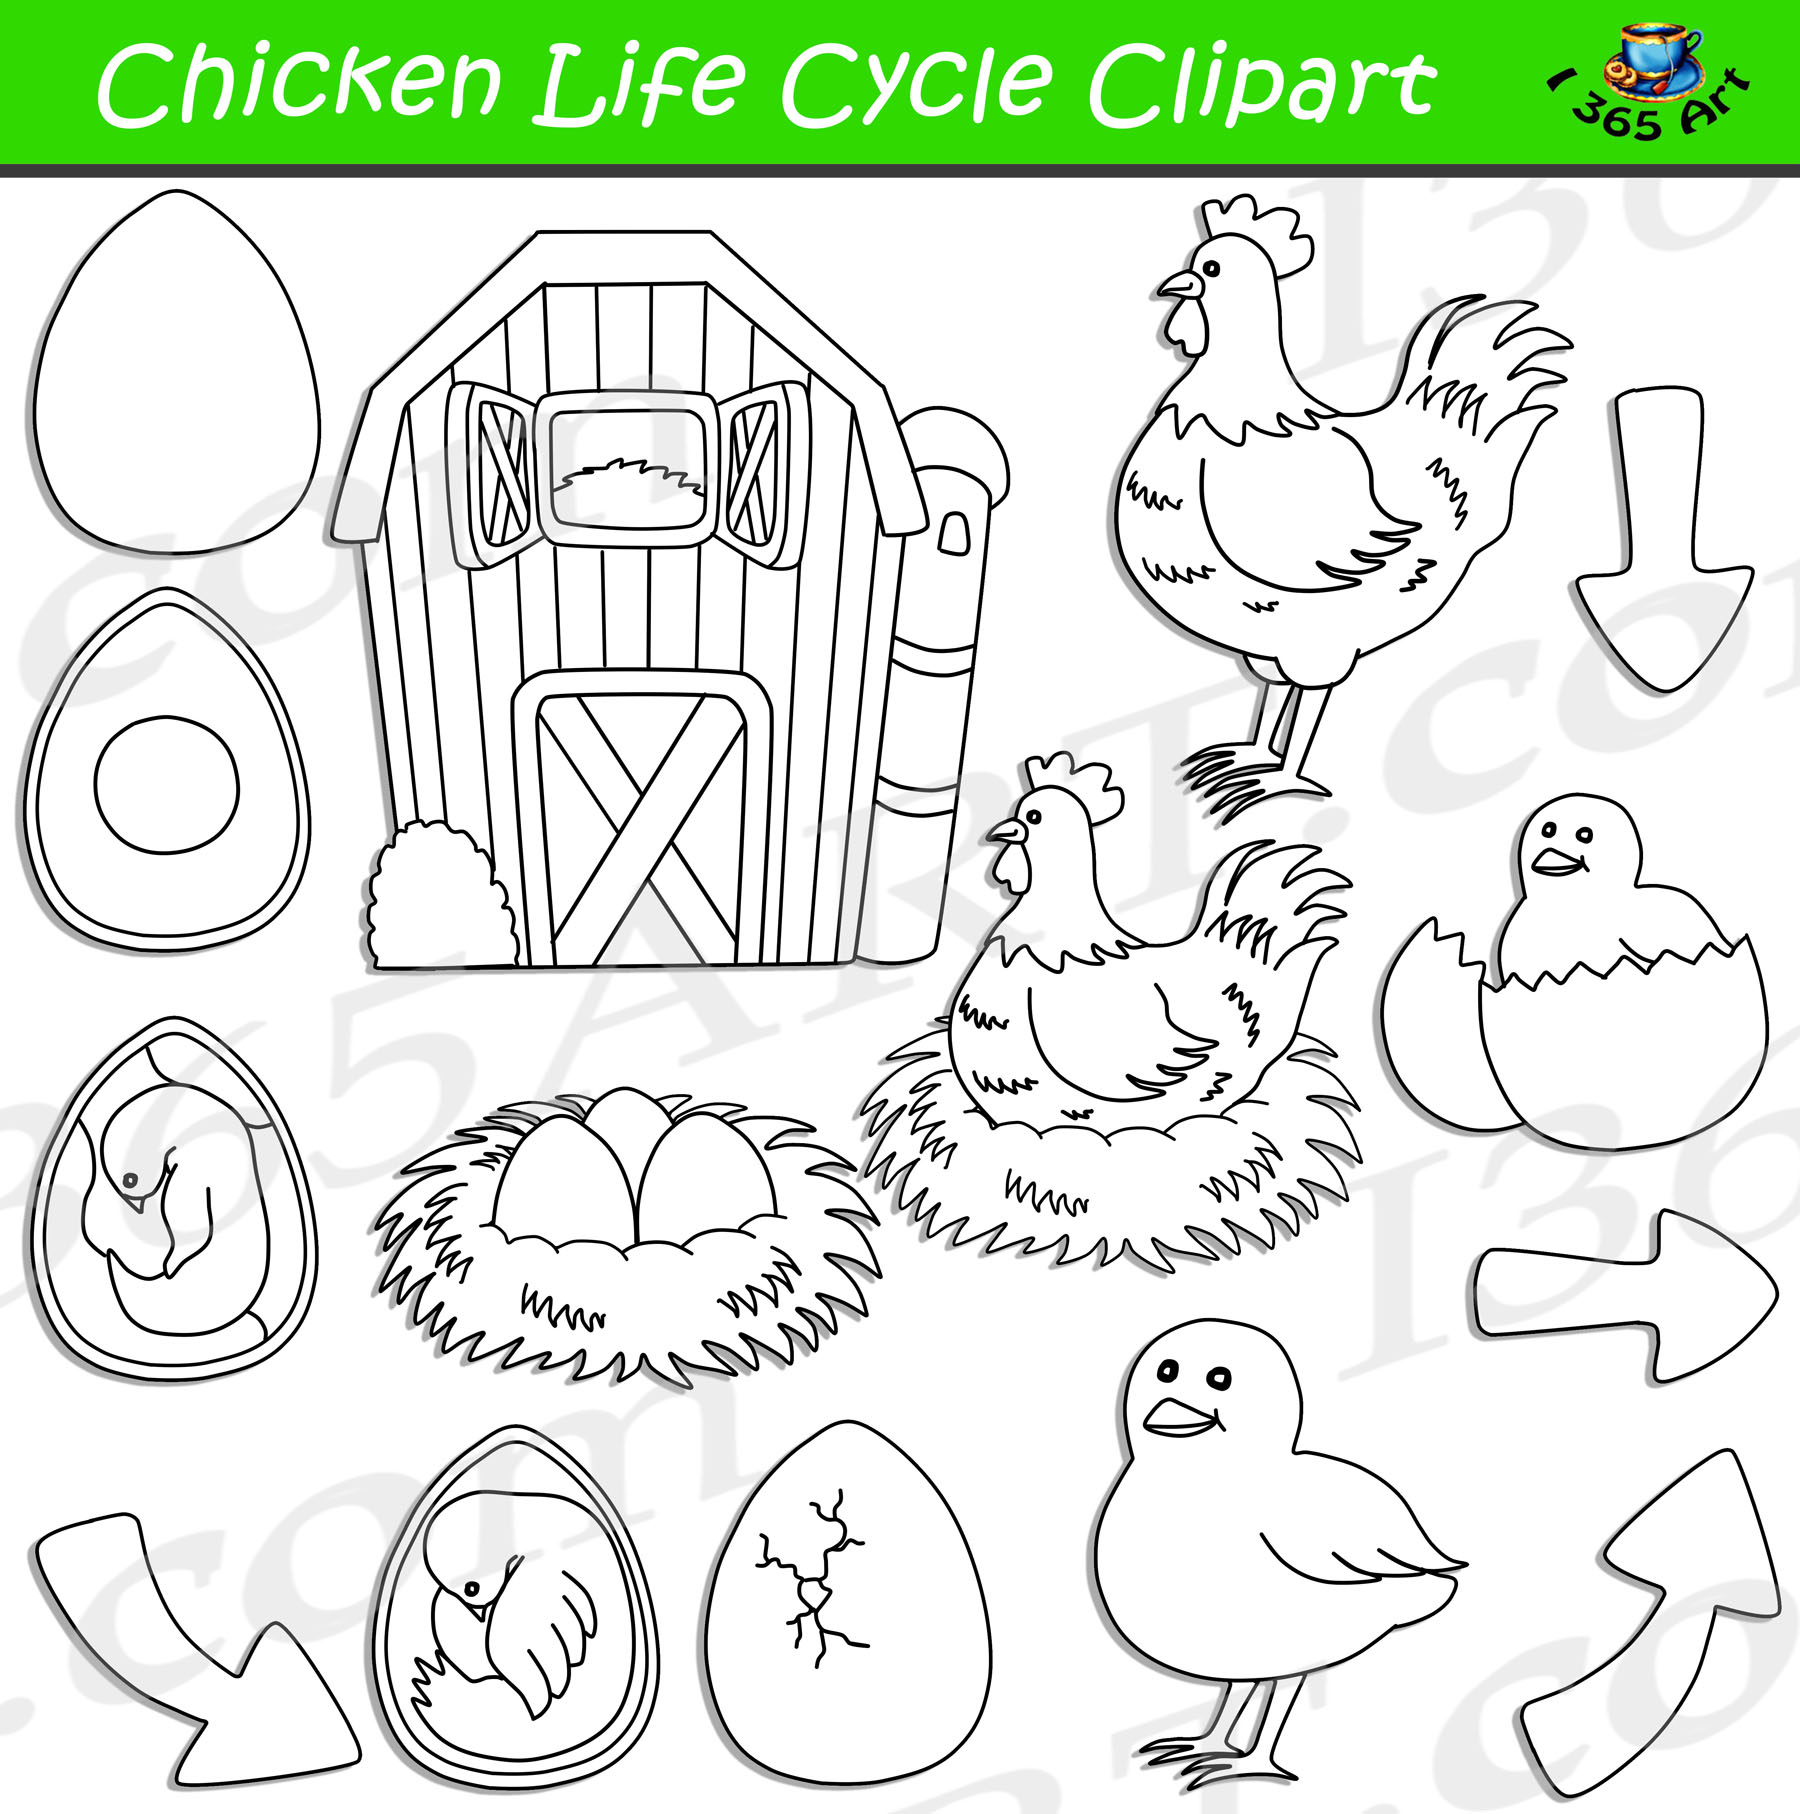 Life is better with chickens around clipart black and white clip art royalty free download Chicken Life Cycle Clipart Bundle clip art royalty free download